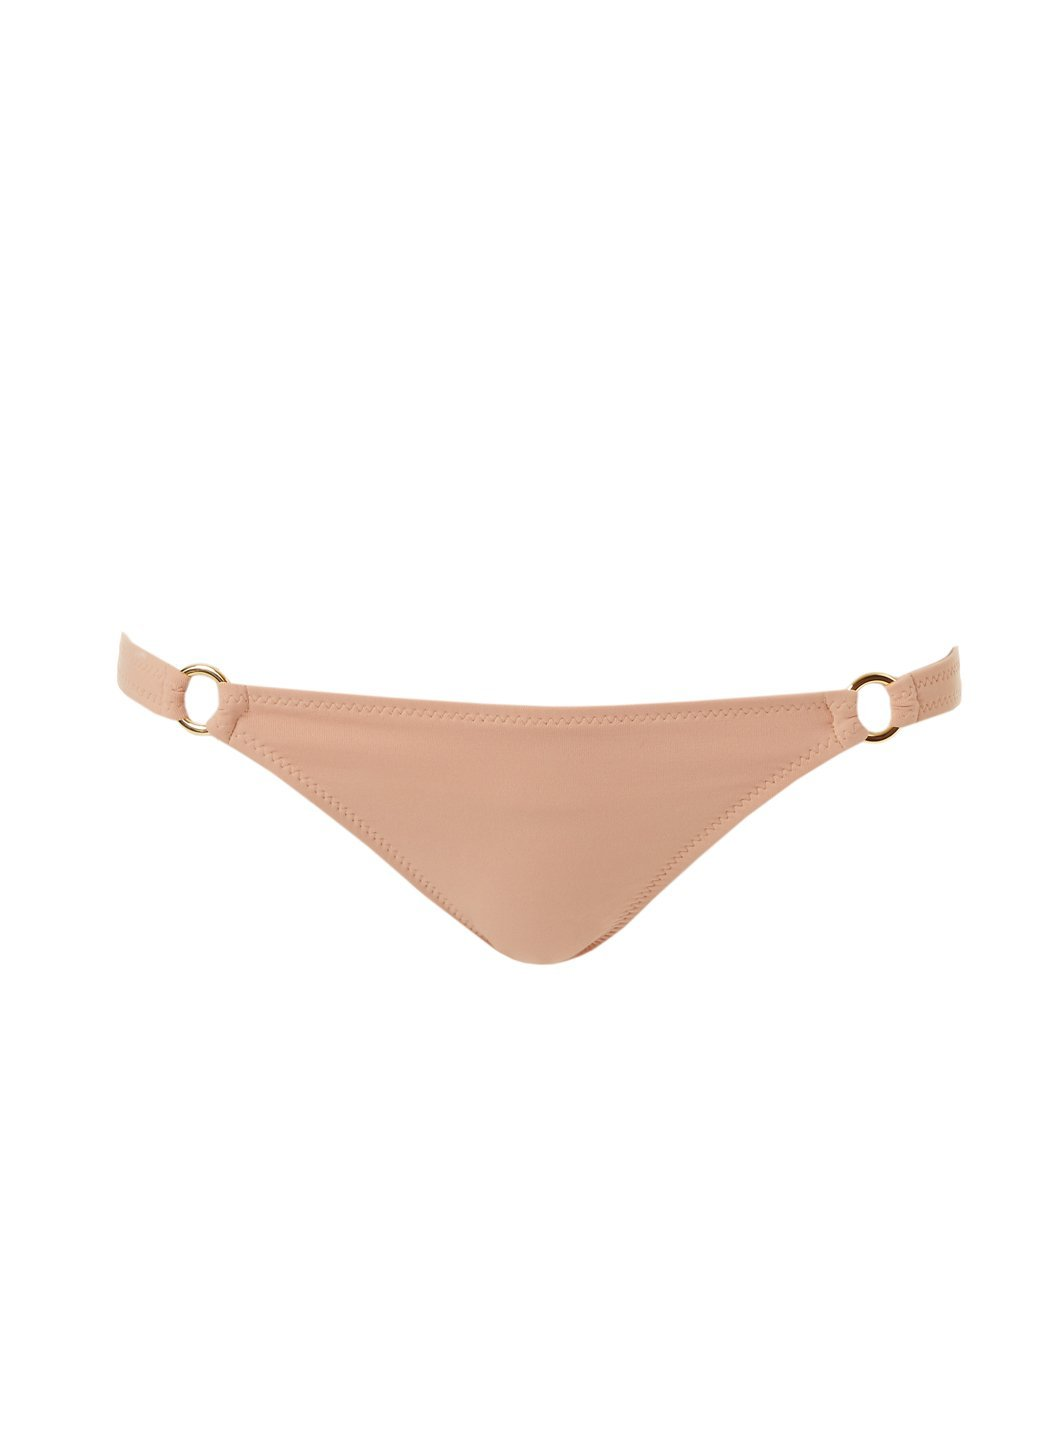 Montenegro Tan Hipster Ring Bikini Bottom